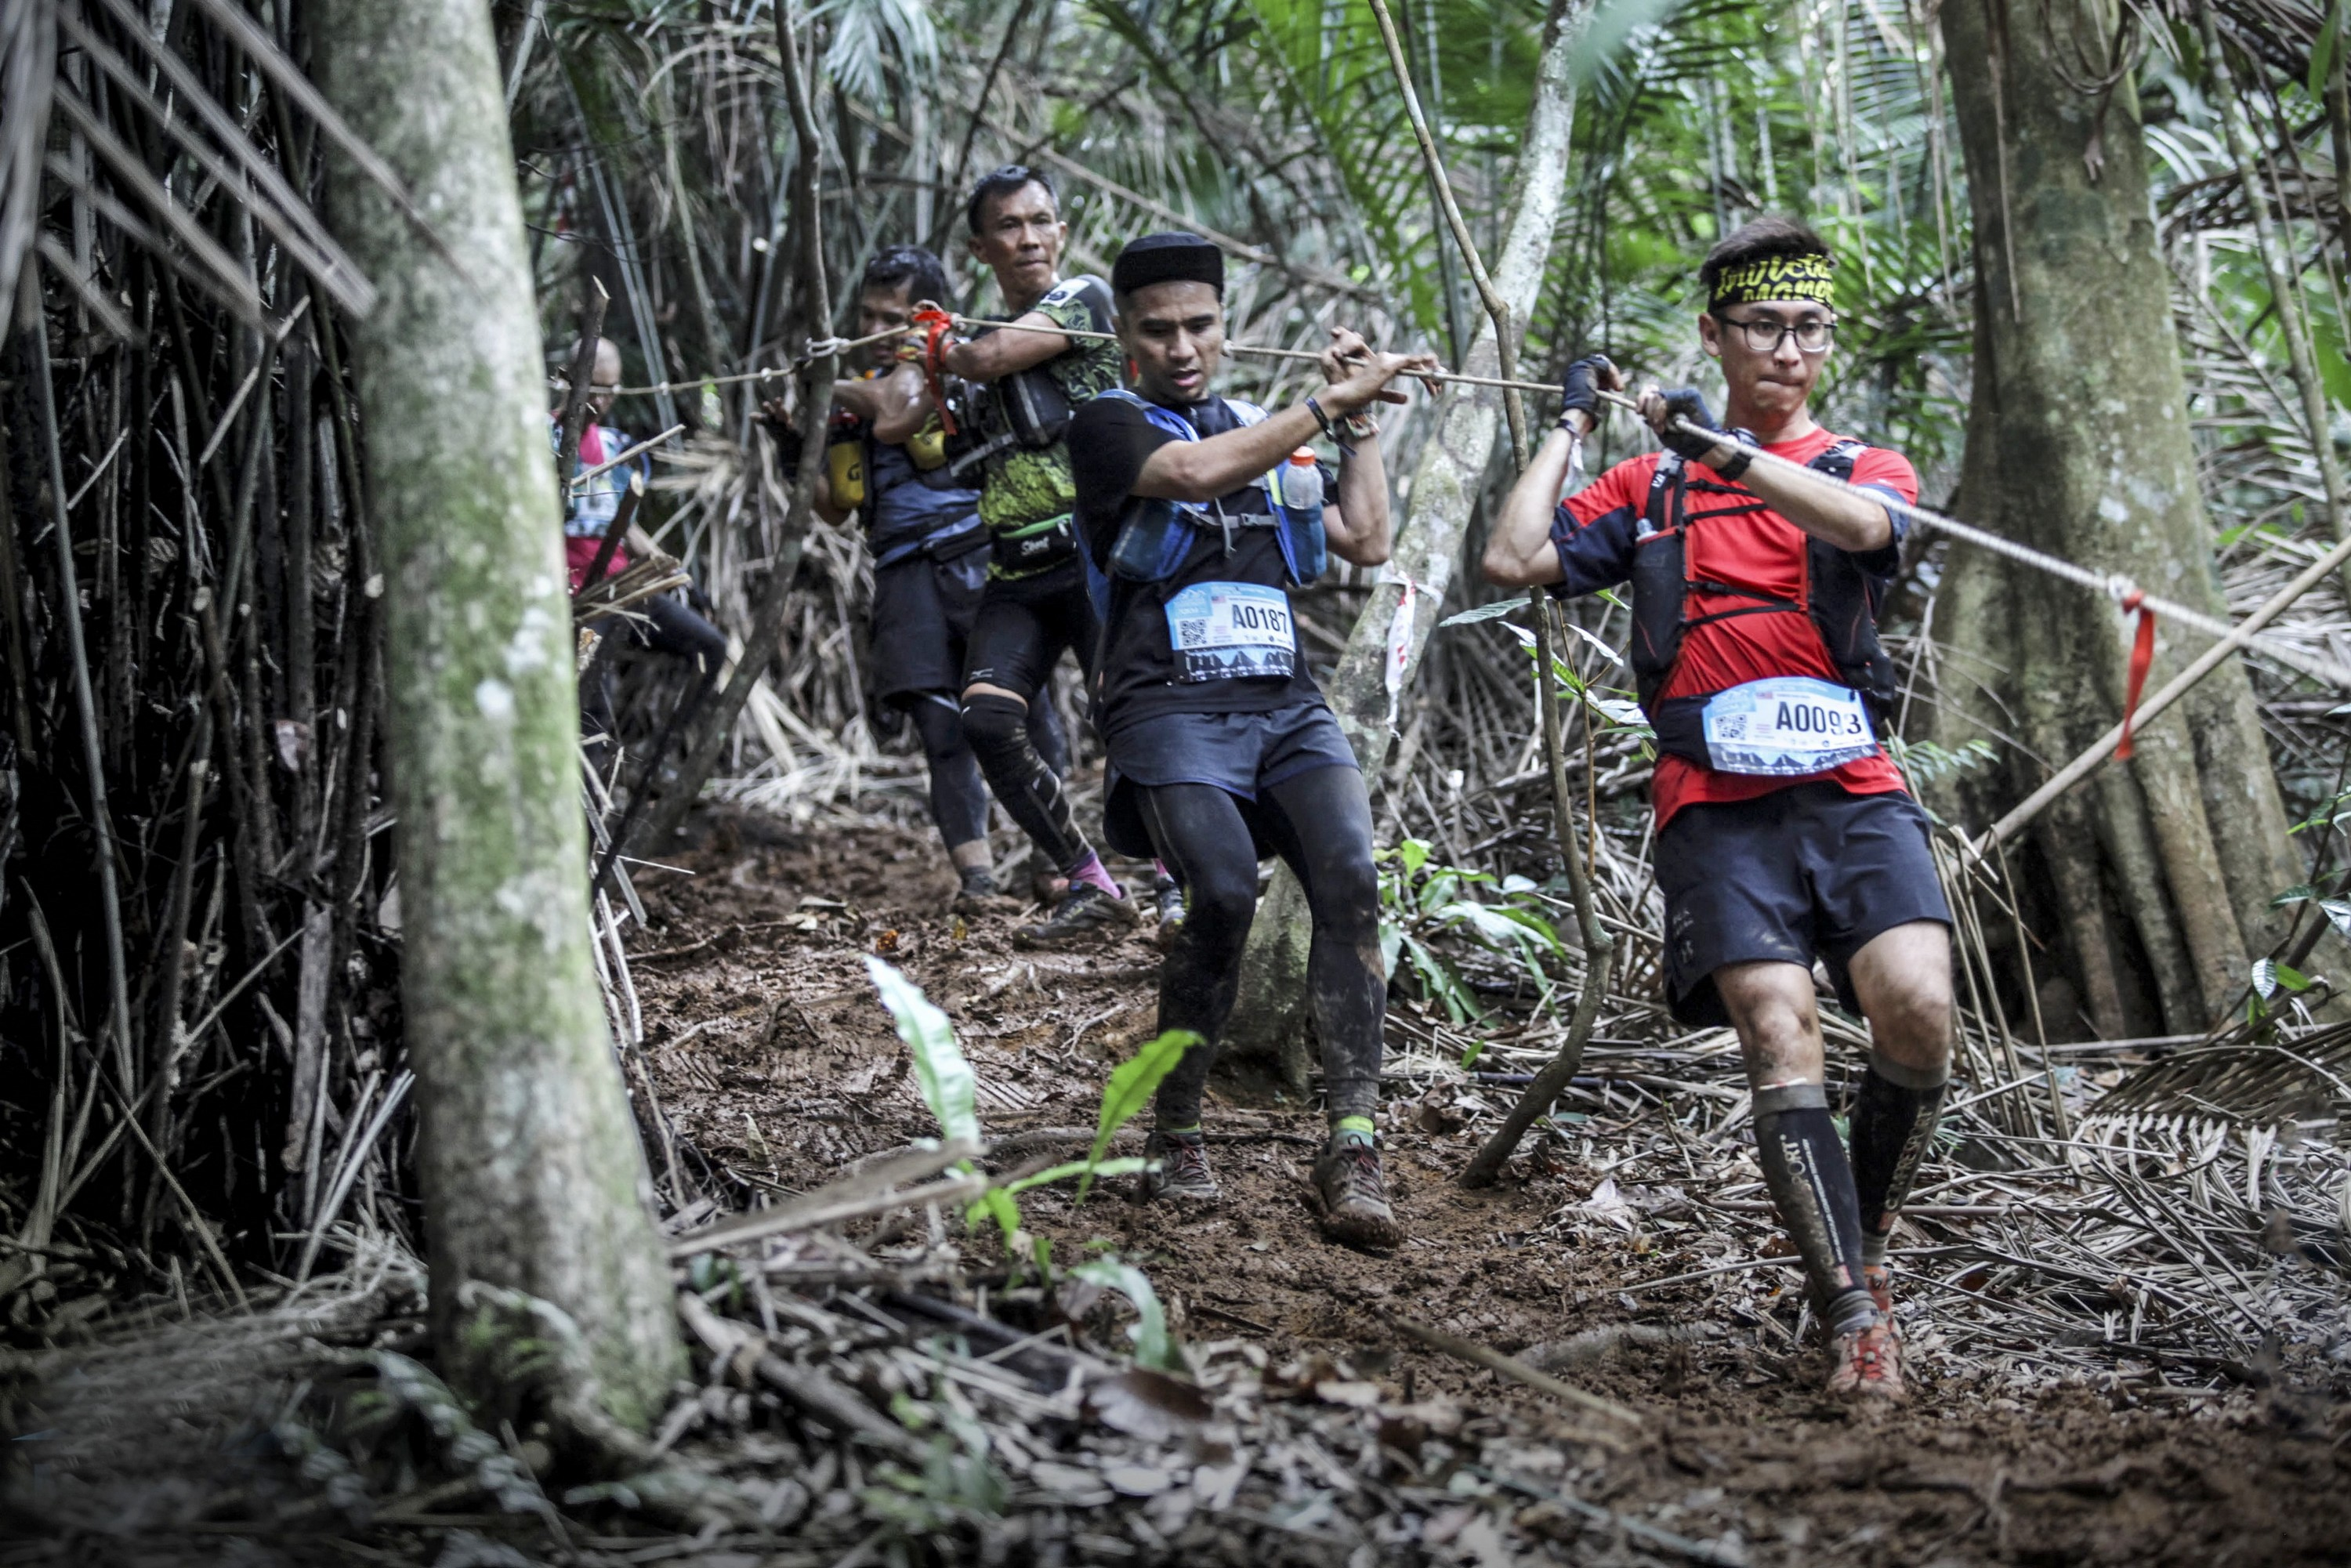 3) MMTF 2018 - Runners making their way in the forest trail (1)